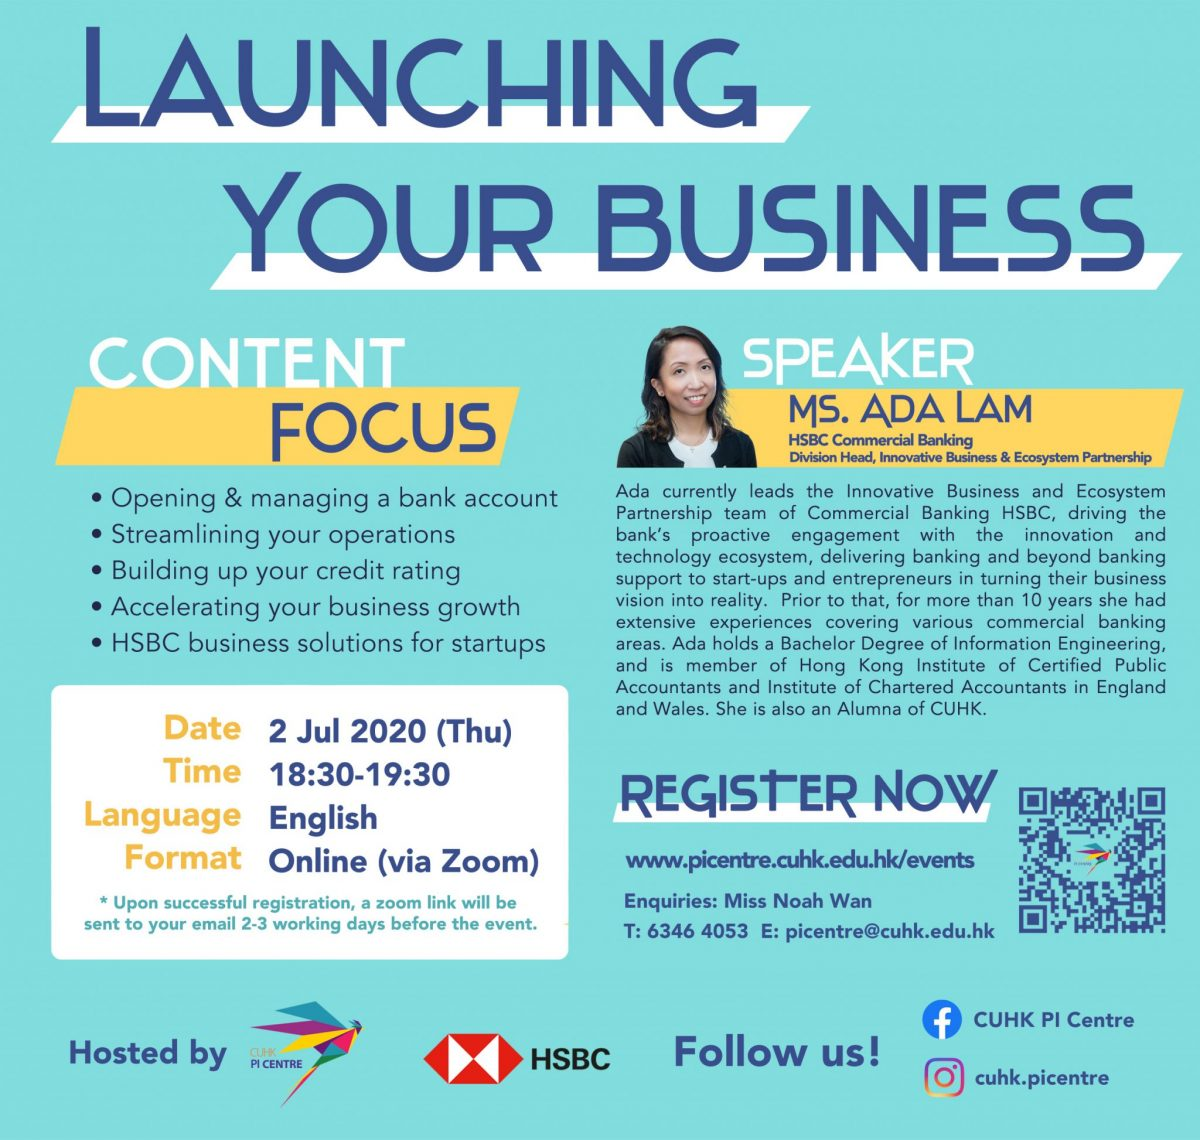 Launching Your Business_CUHK Pi Centre